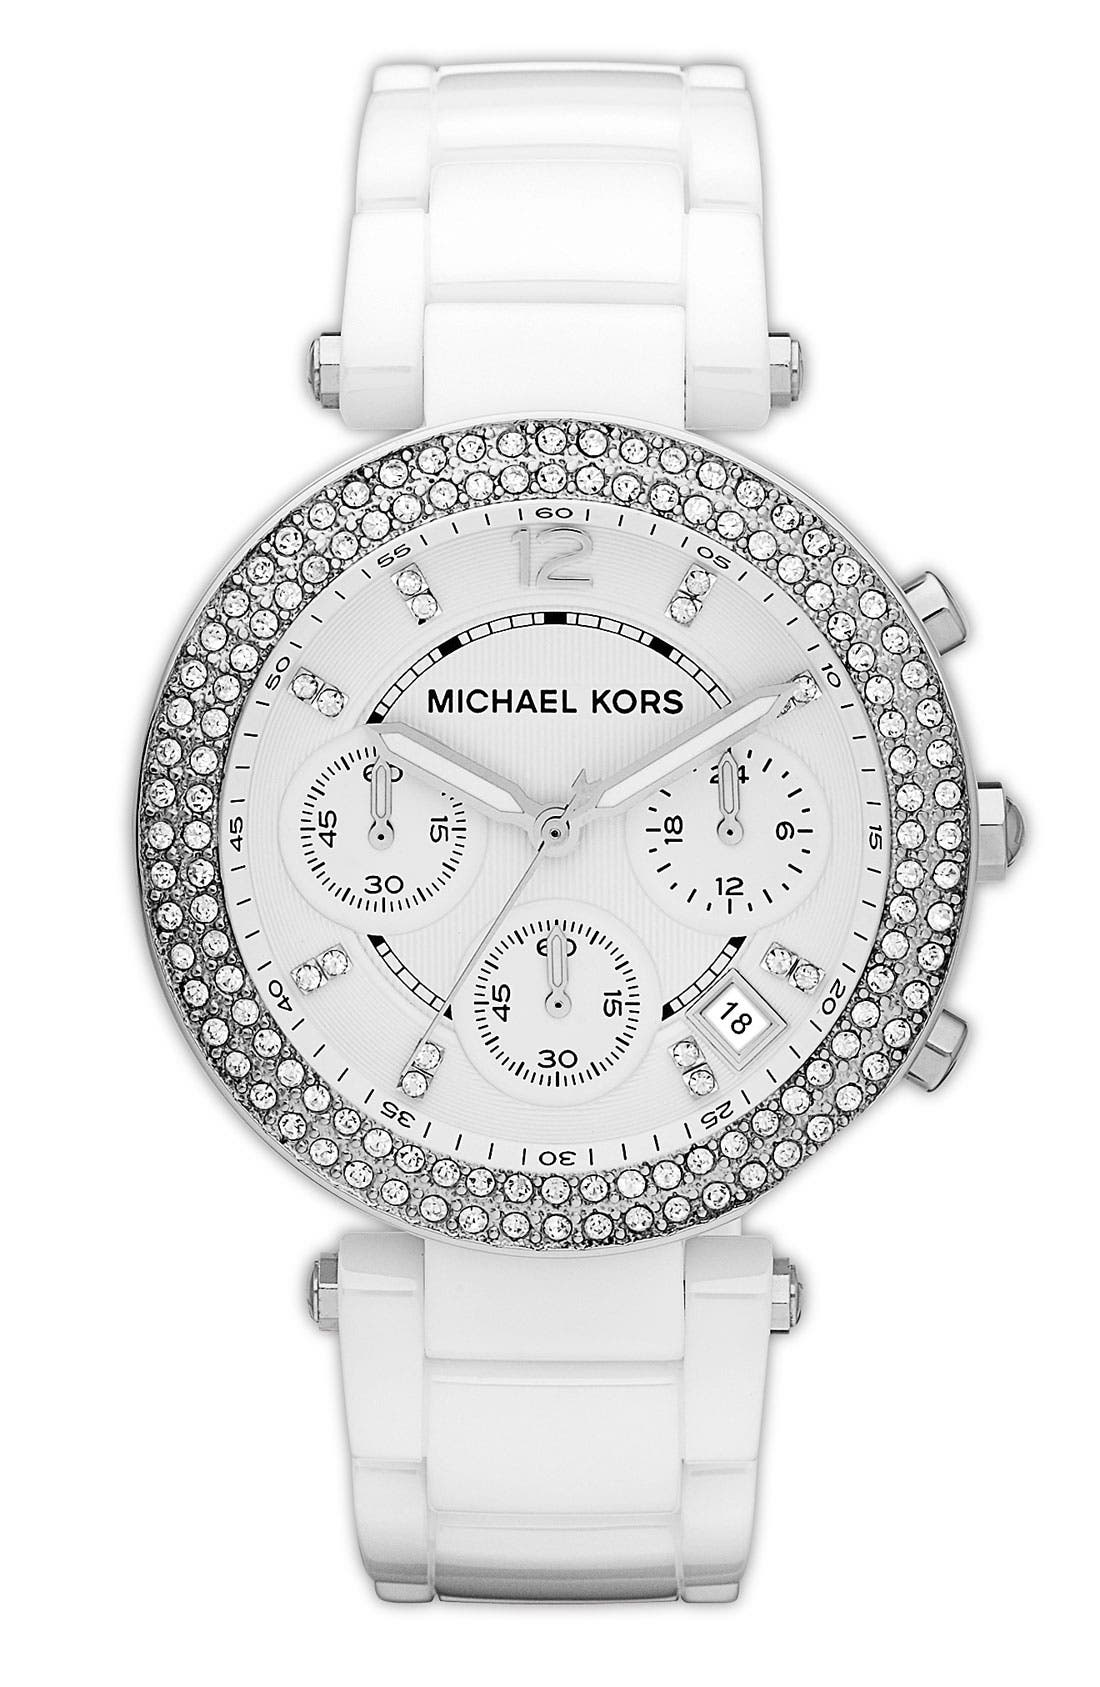 Main Image - Michael Kors 'Parker' Chronograph Ceramic Bracelet Watch, 39mm